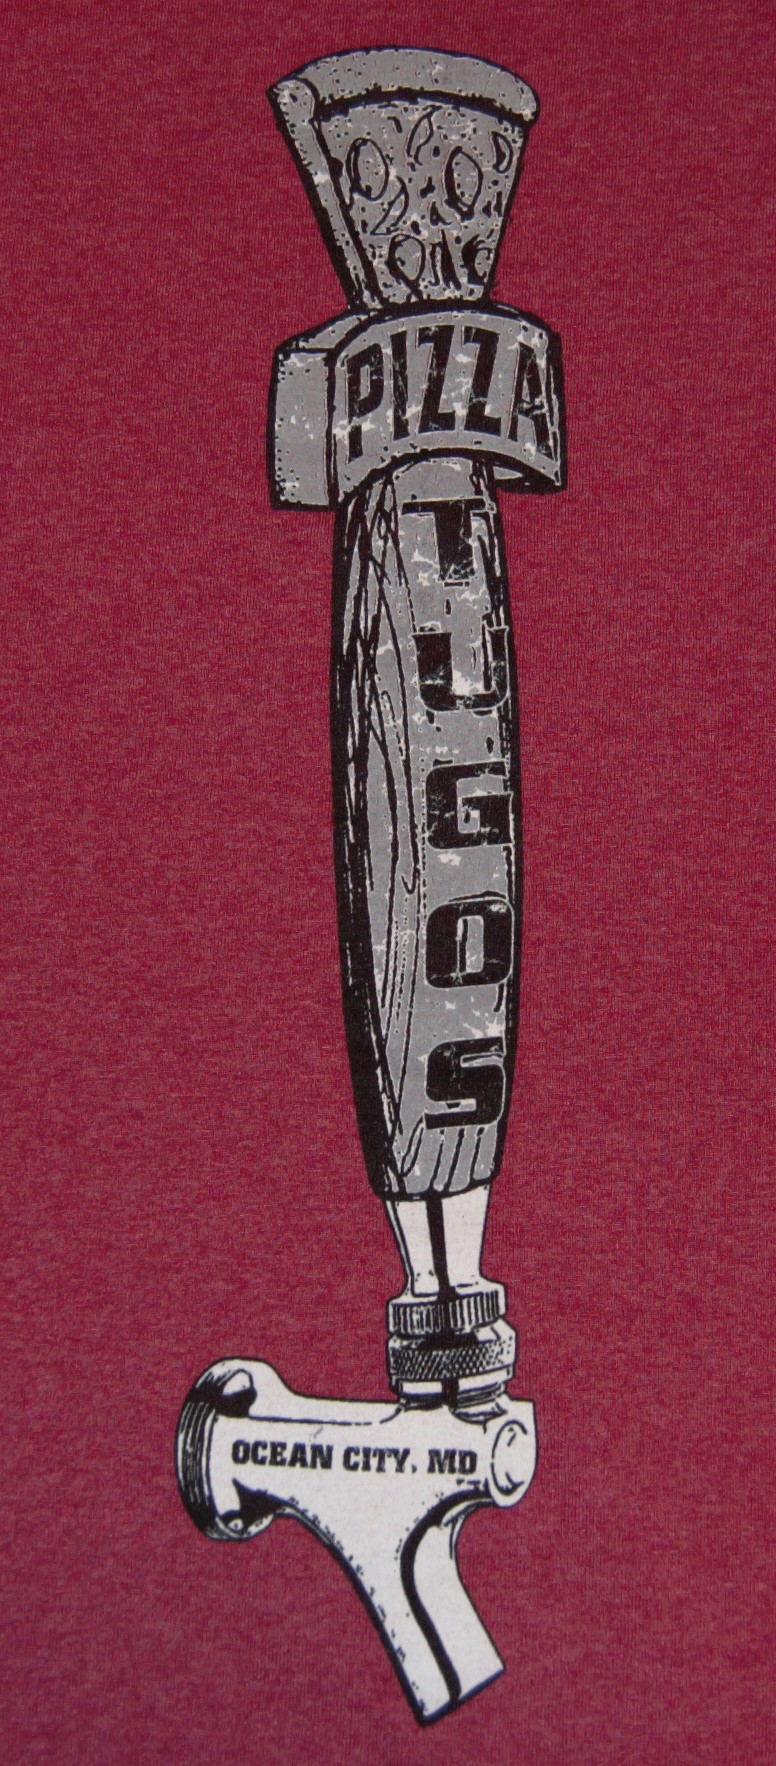 Tugos Taproom Beer Tap Red Back of Shirt Close Up